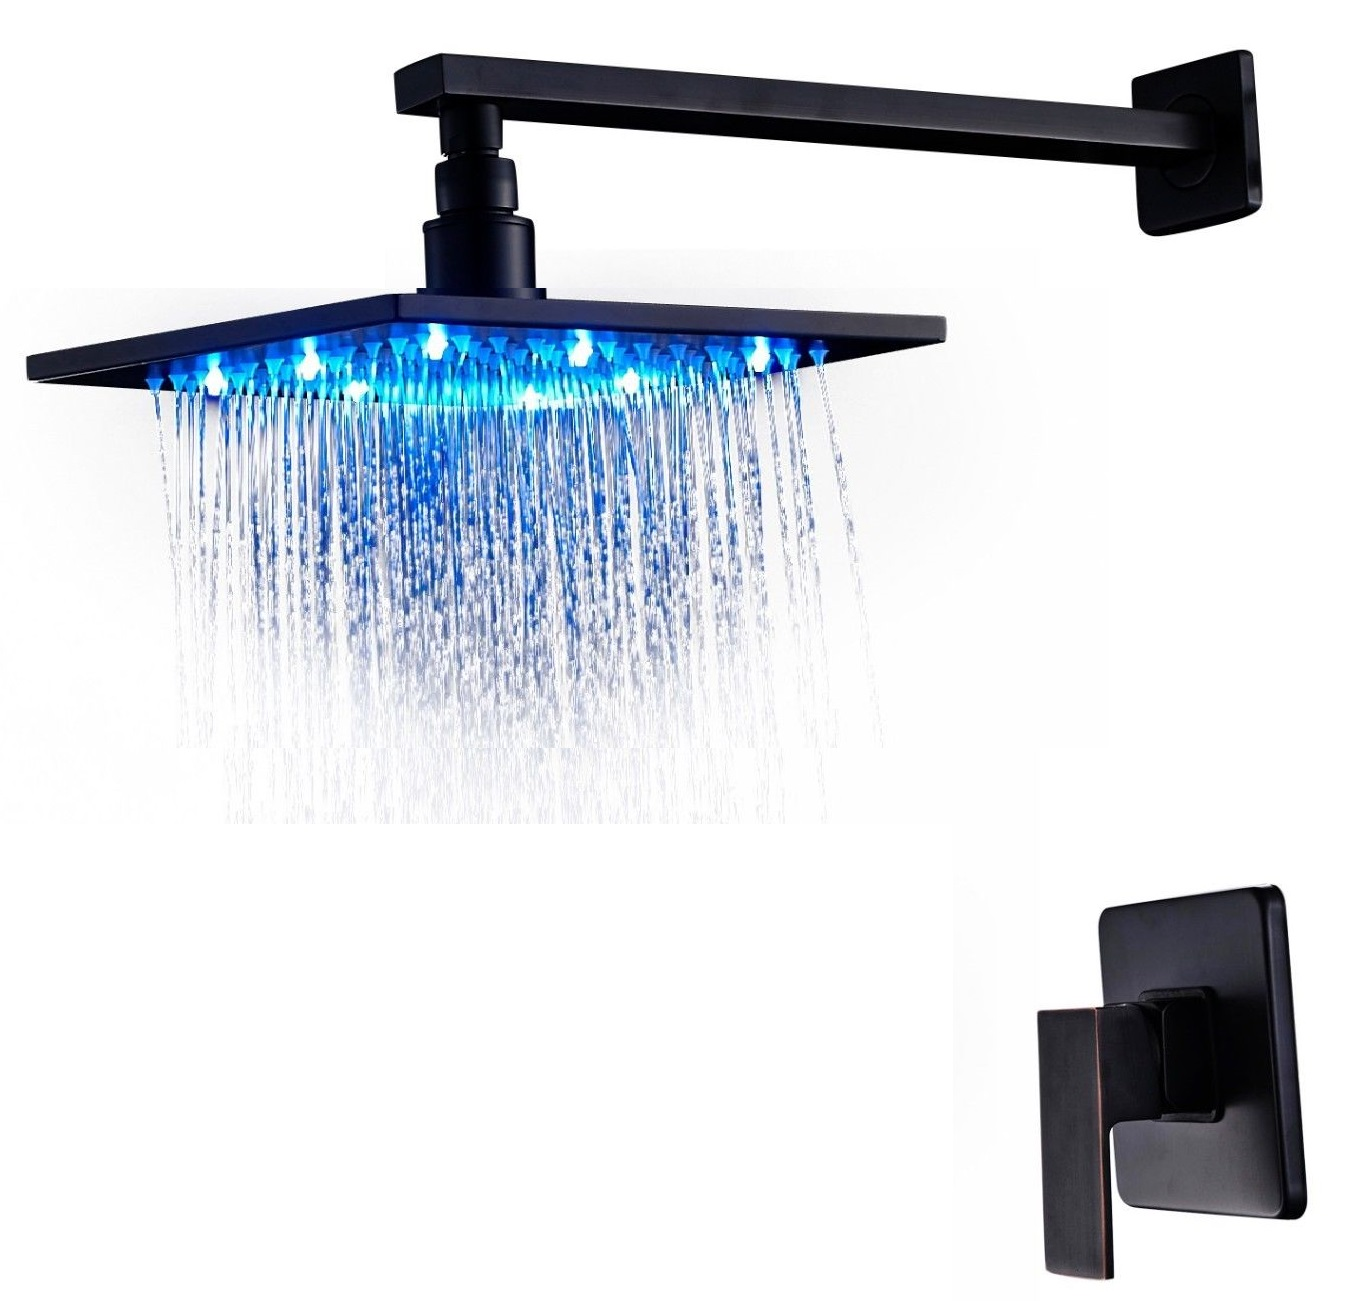 8 10 12 16 Oil Rubbed Bronze Rain Shower Head Fo